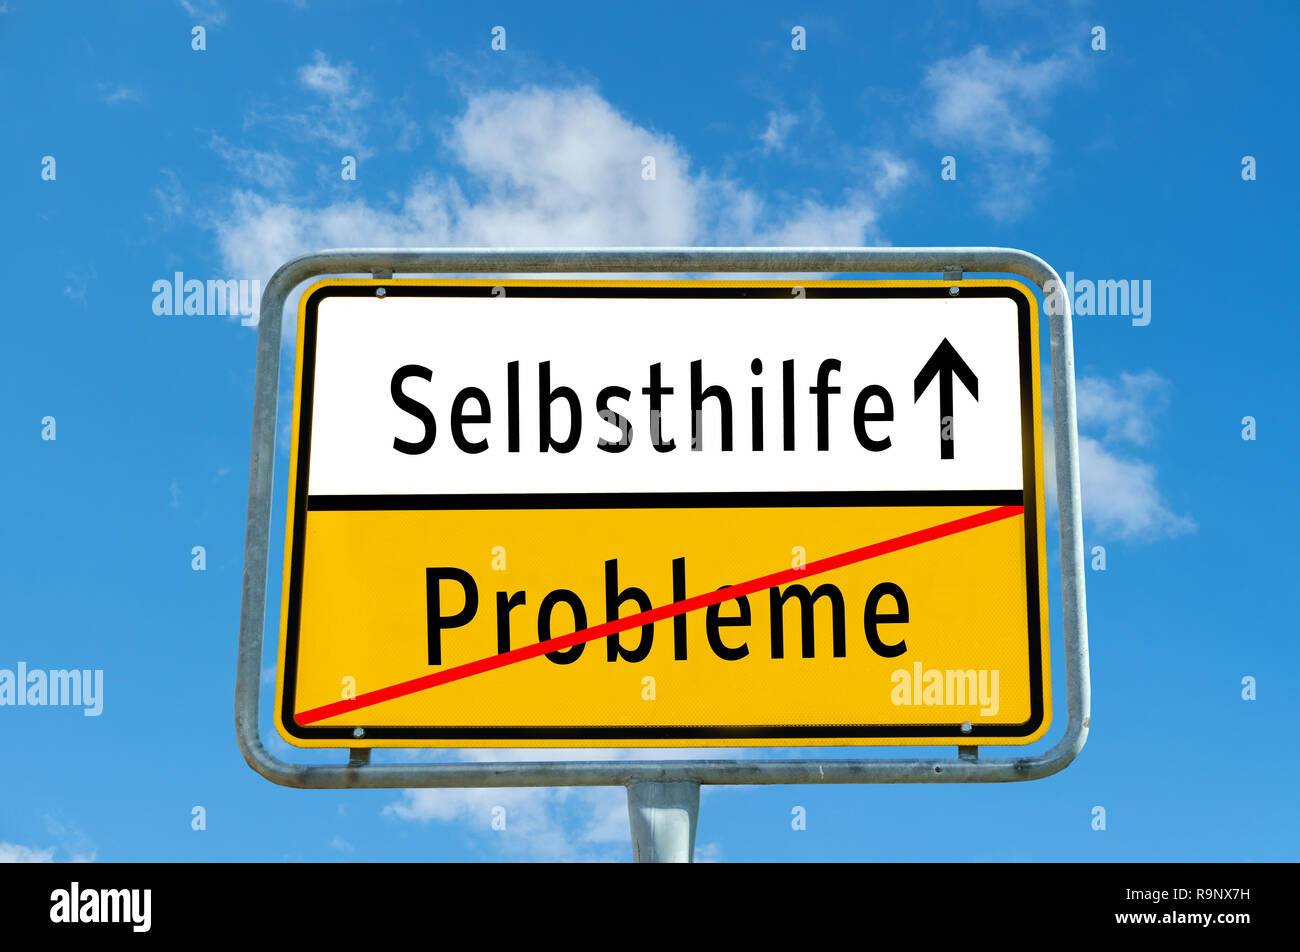 Ortstafel Selbsthilfe/Probleme - Stock Image